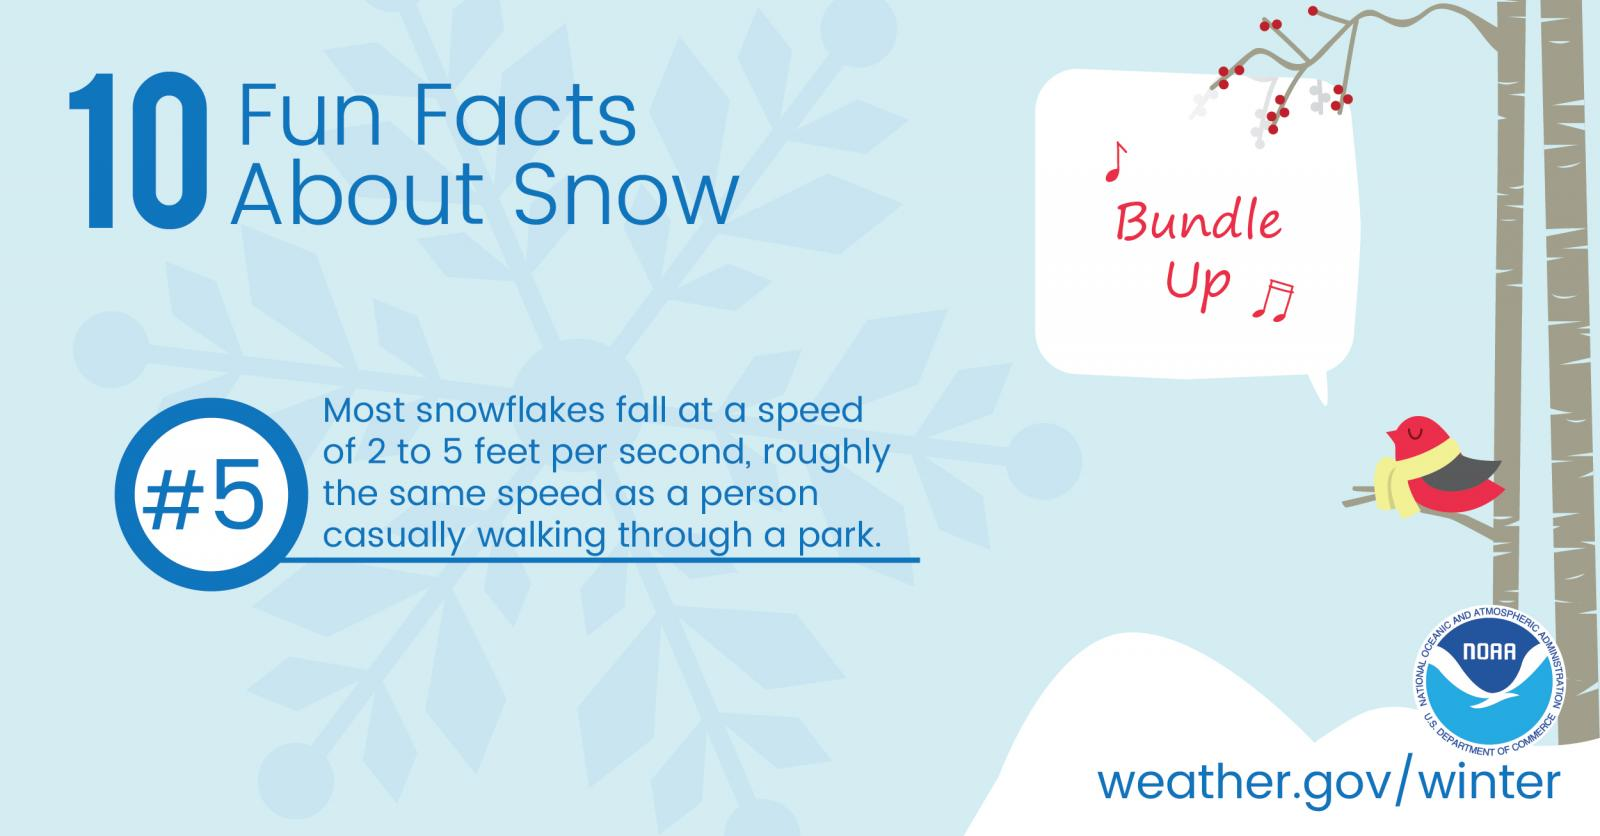 10 Fun Facts About Snow: #5. Most snowflakes fall at a speed of 2 to 5 feet per second, roughly the same speed as a person casually walking through a park.